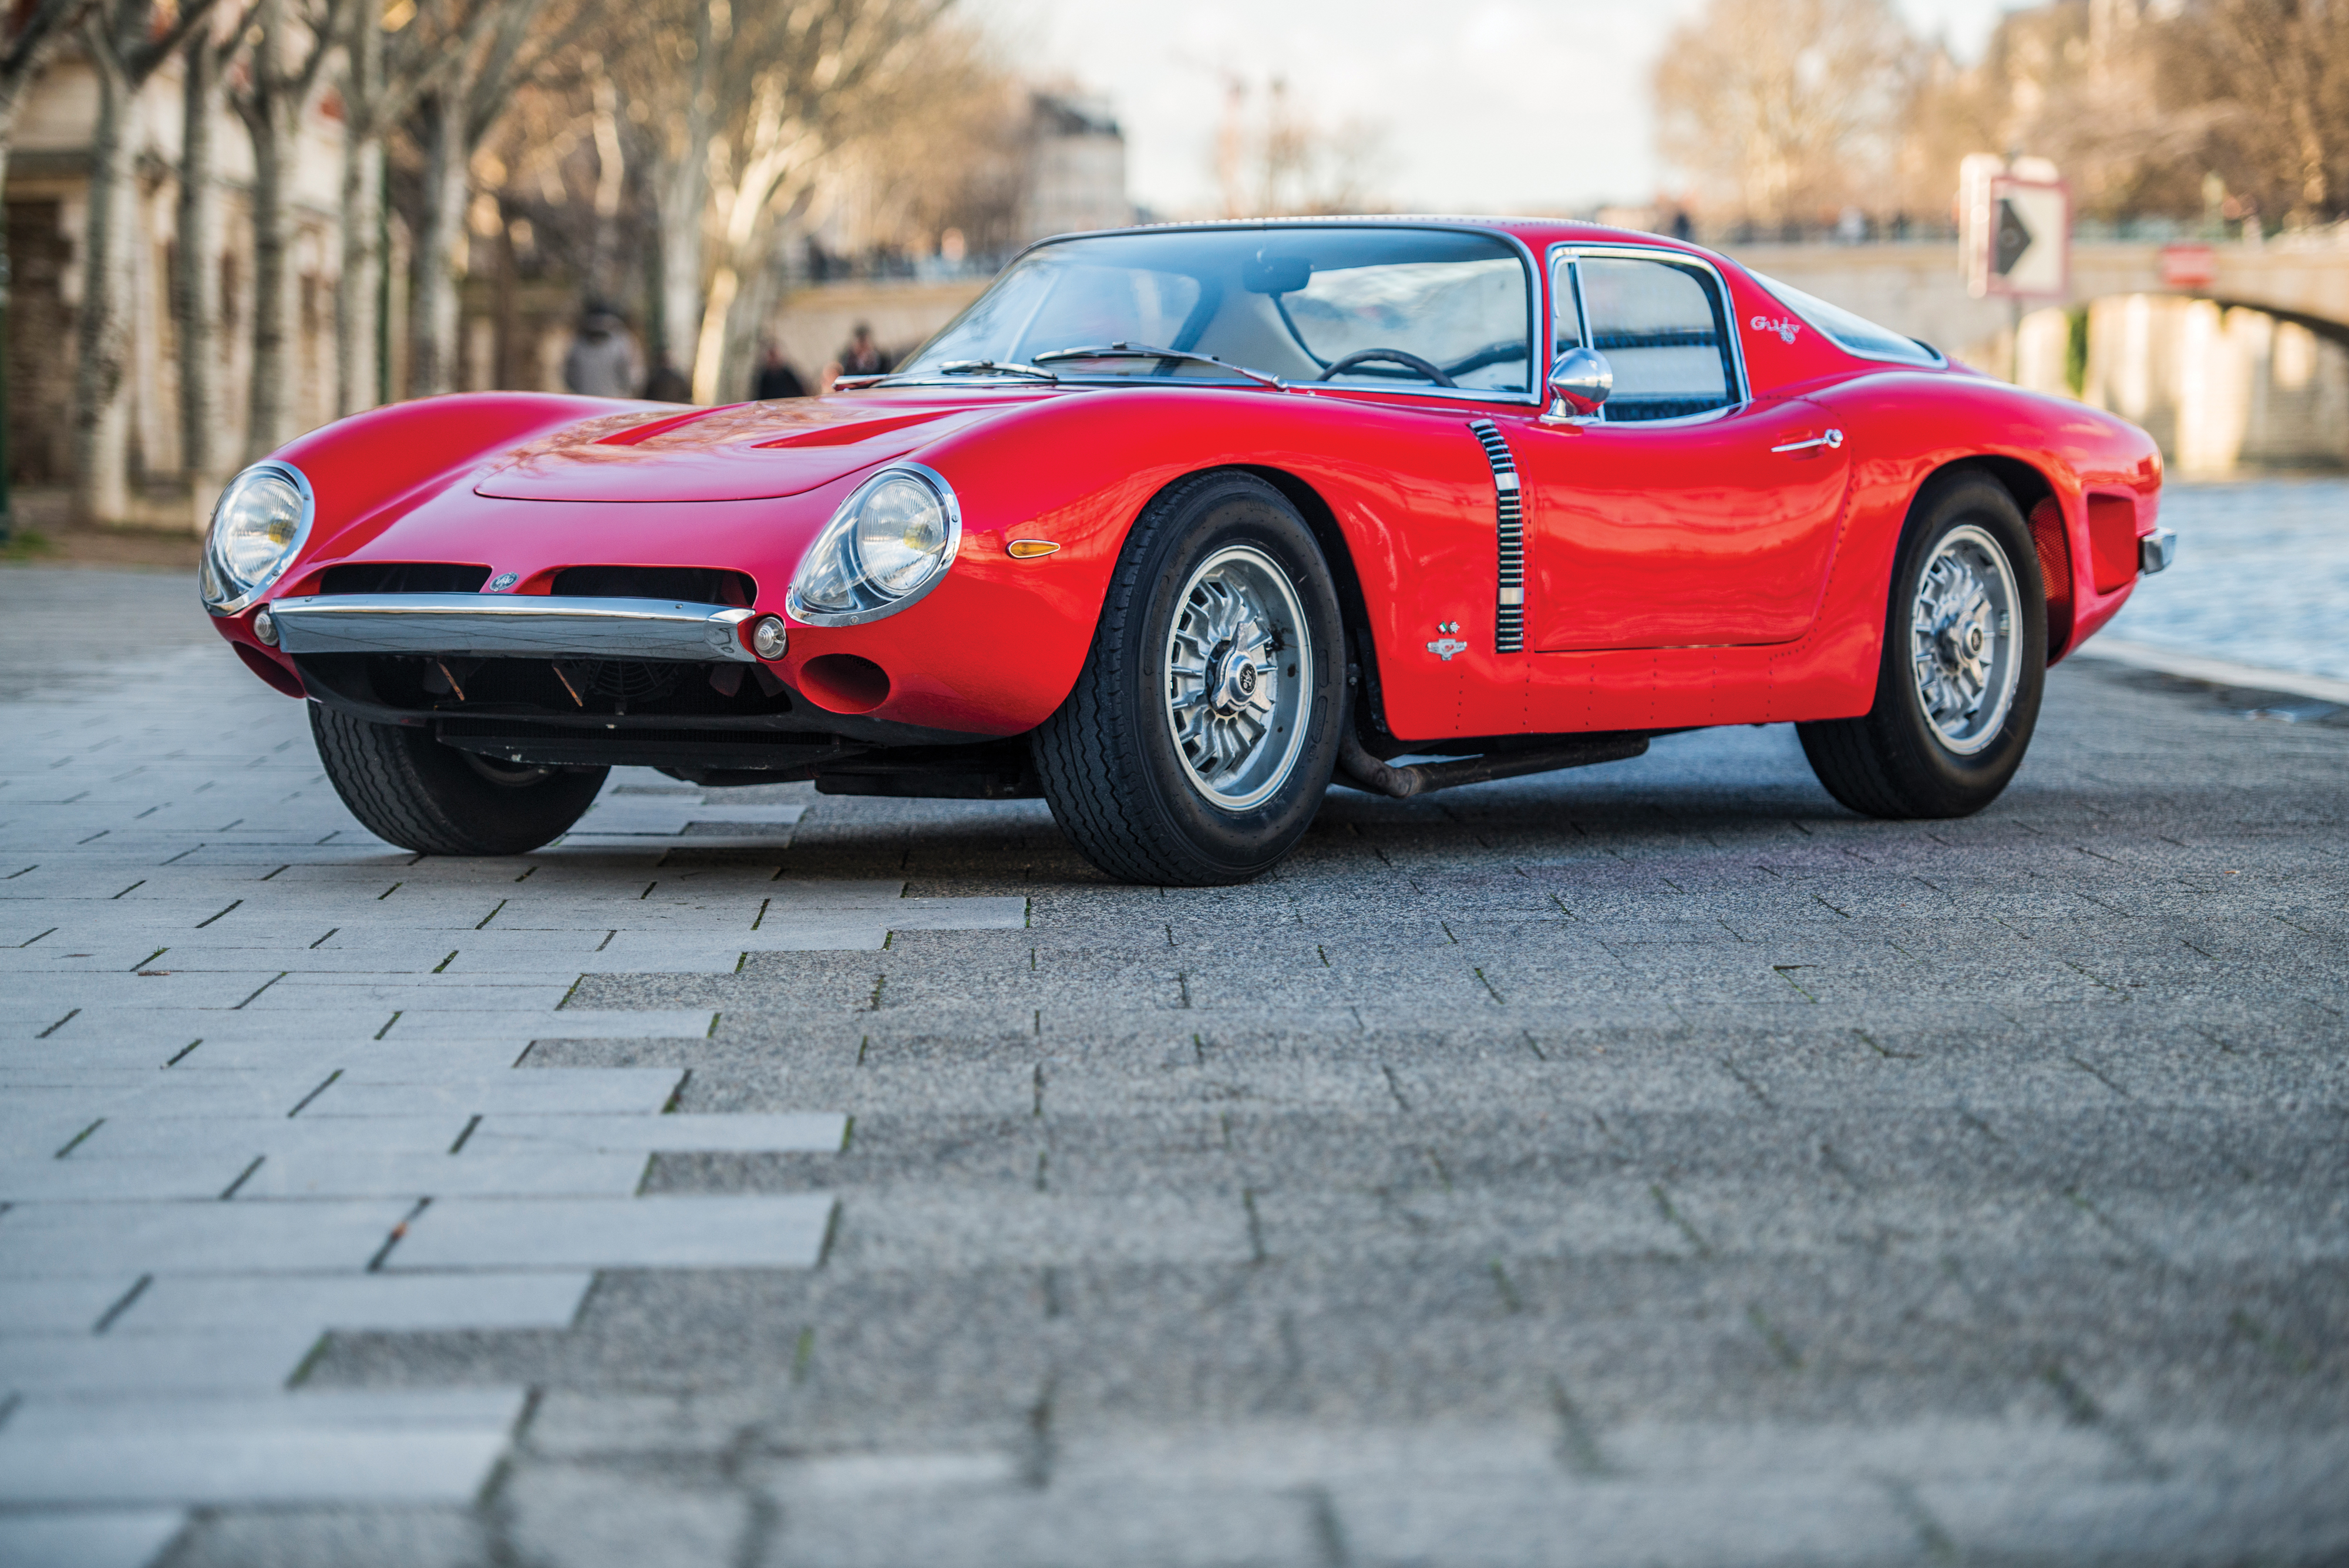 Riveted 1965 Iso Grifo A3/C formerly owned by the late Johnny Hallyday set for RM Sotheby's Paris sale on 7 February (Credit – Remi Dargegen © 2017 Courtesy of RM Sotheby's)